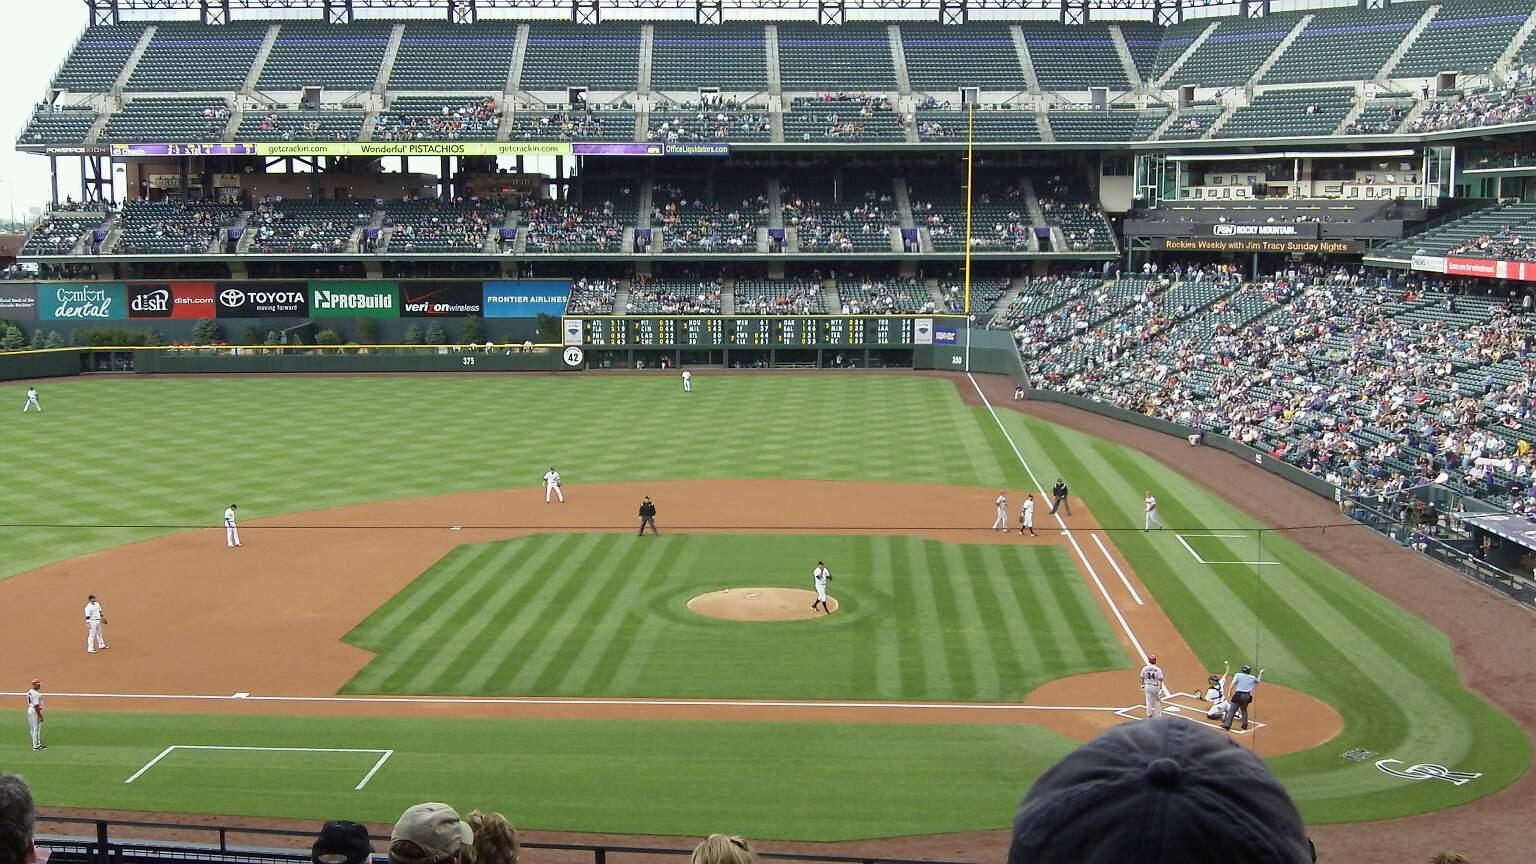 Coors Field Section 236 Row 9 Seat 6